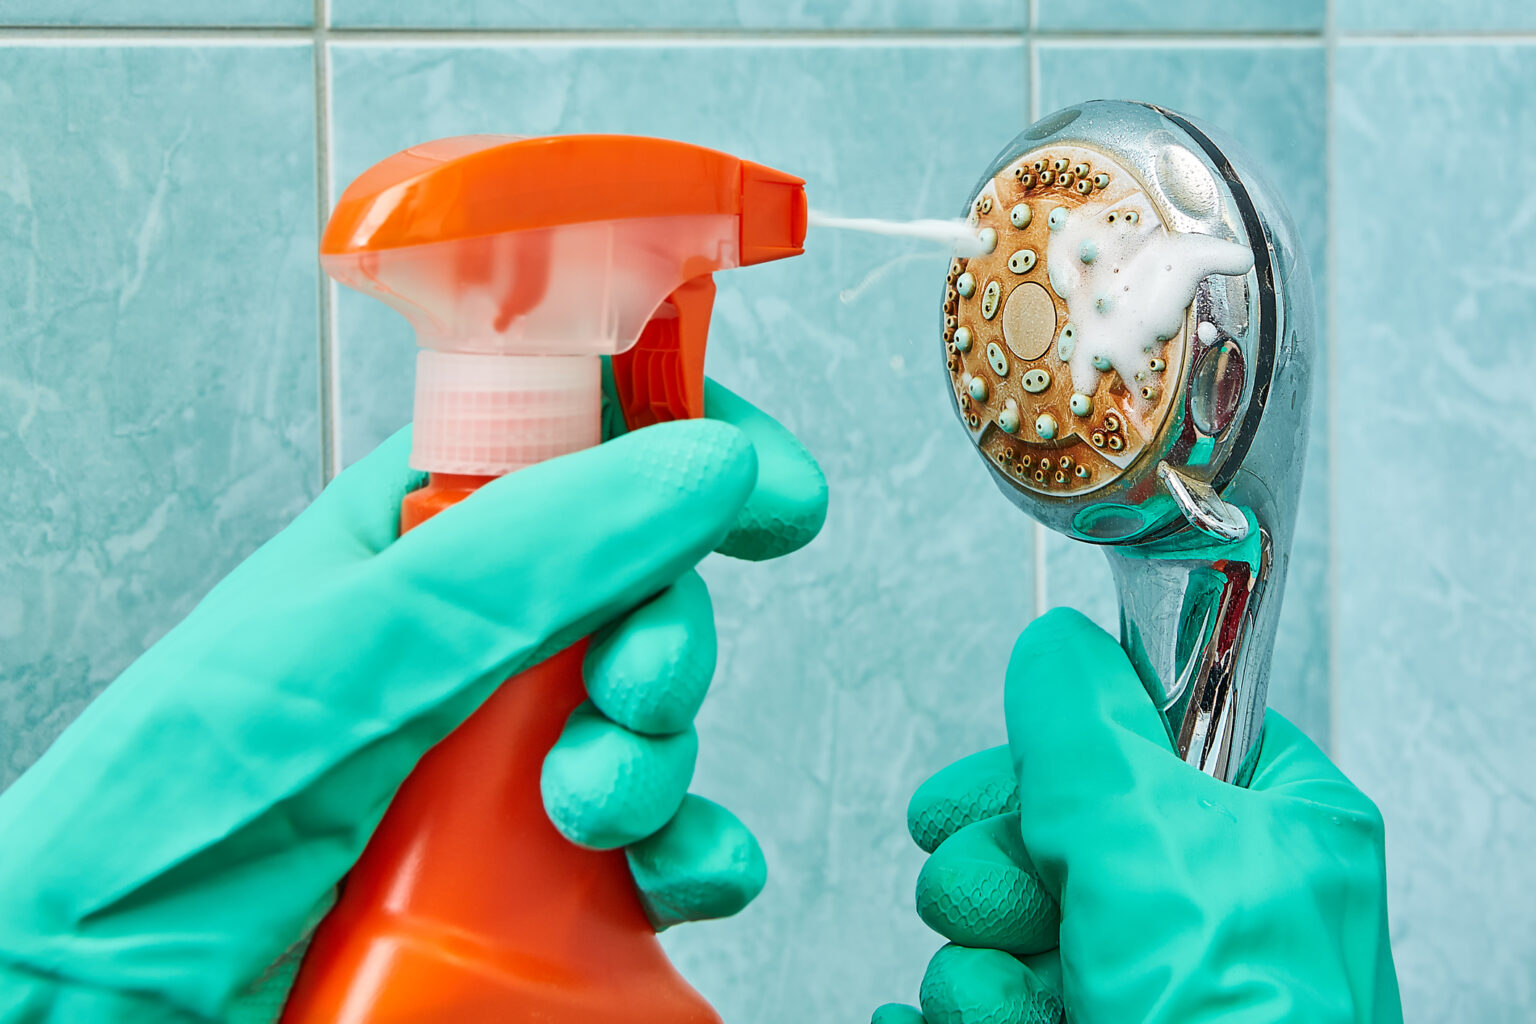 A heads up about creating an even cleaner shower